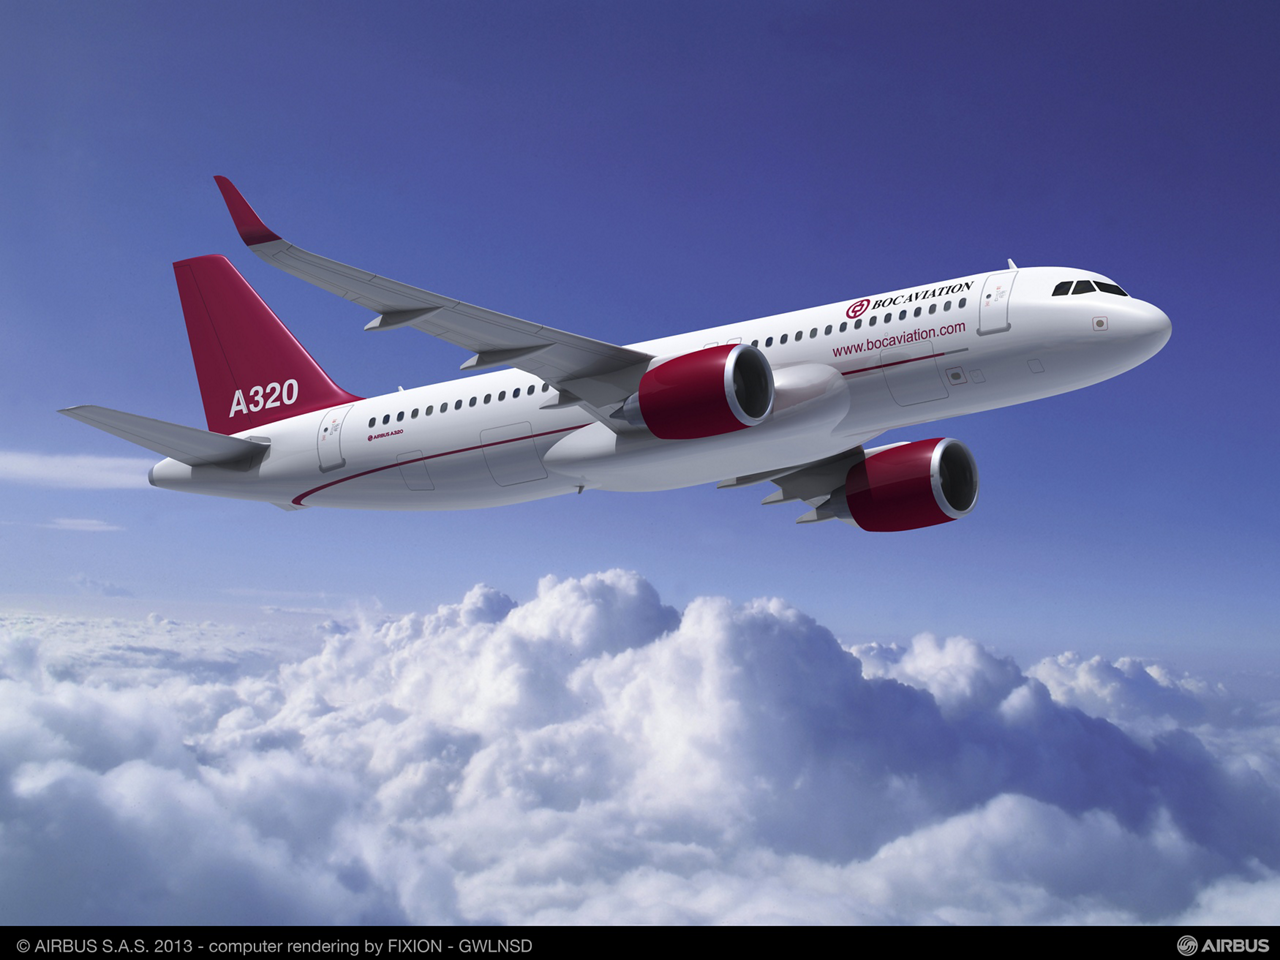 BOC Aviation – the Singapore-based aircraft leasing subsidiary of Bank of China – signed a firm order in December 2012 for the purchase of 50 A320 Family jetliners, including 25 NEOs